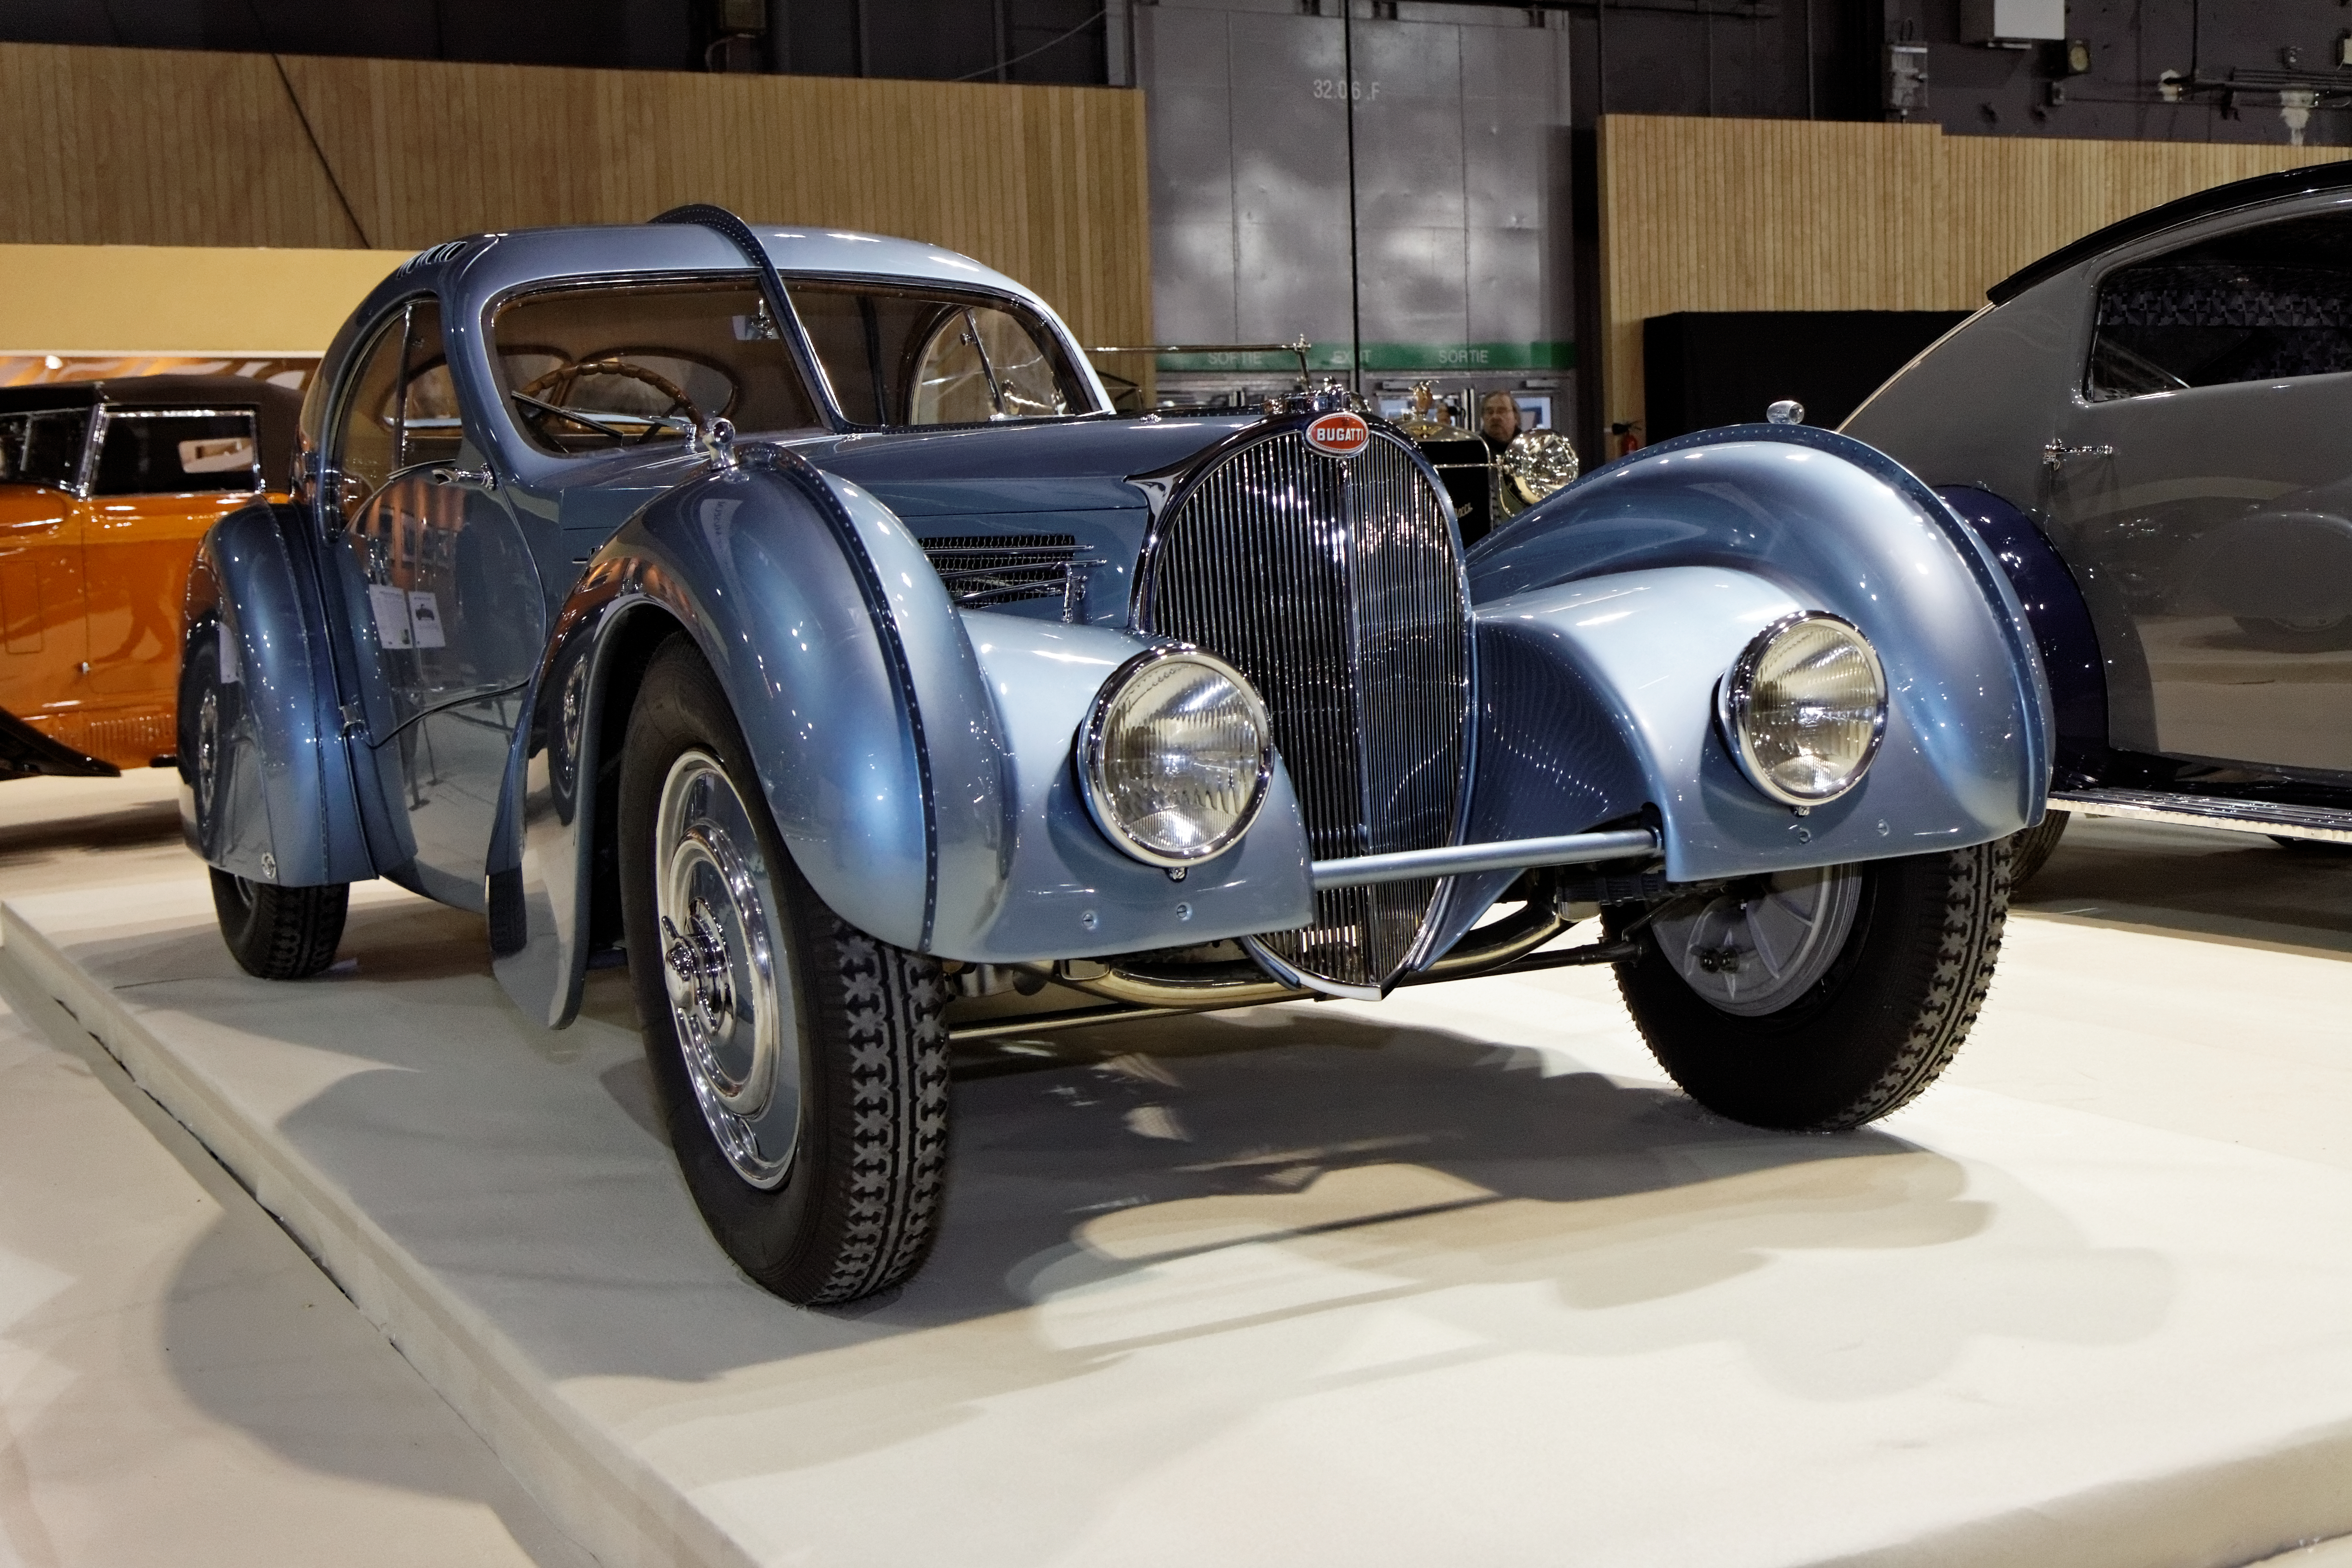 datei:paris - retromobile 2012 - bugatti type 57sc atlantic - 1936